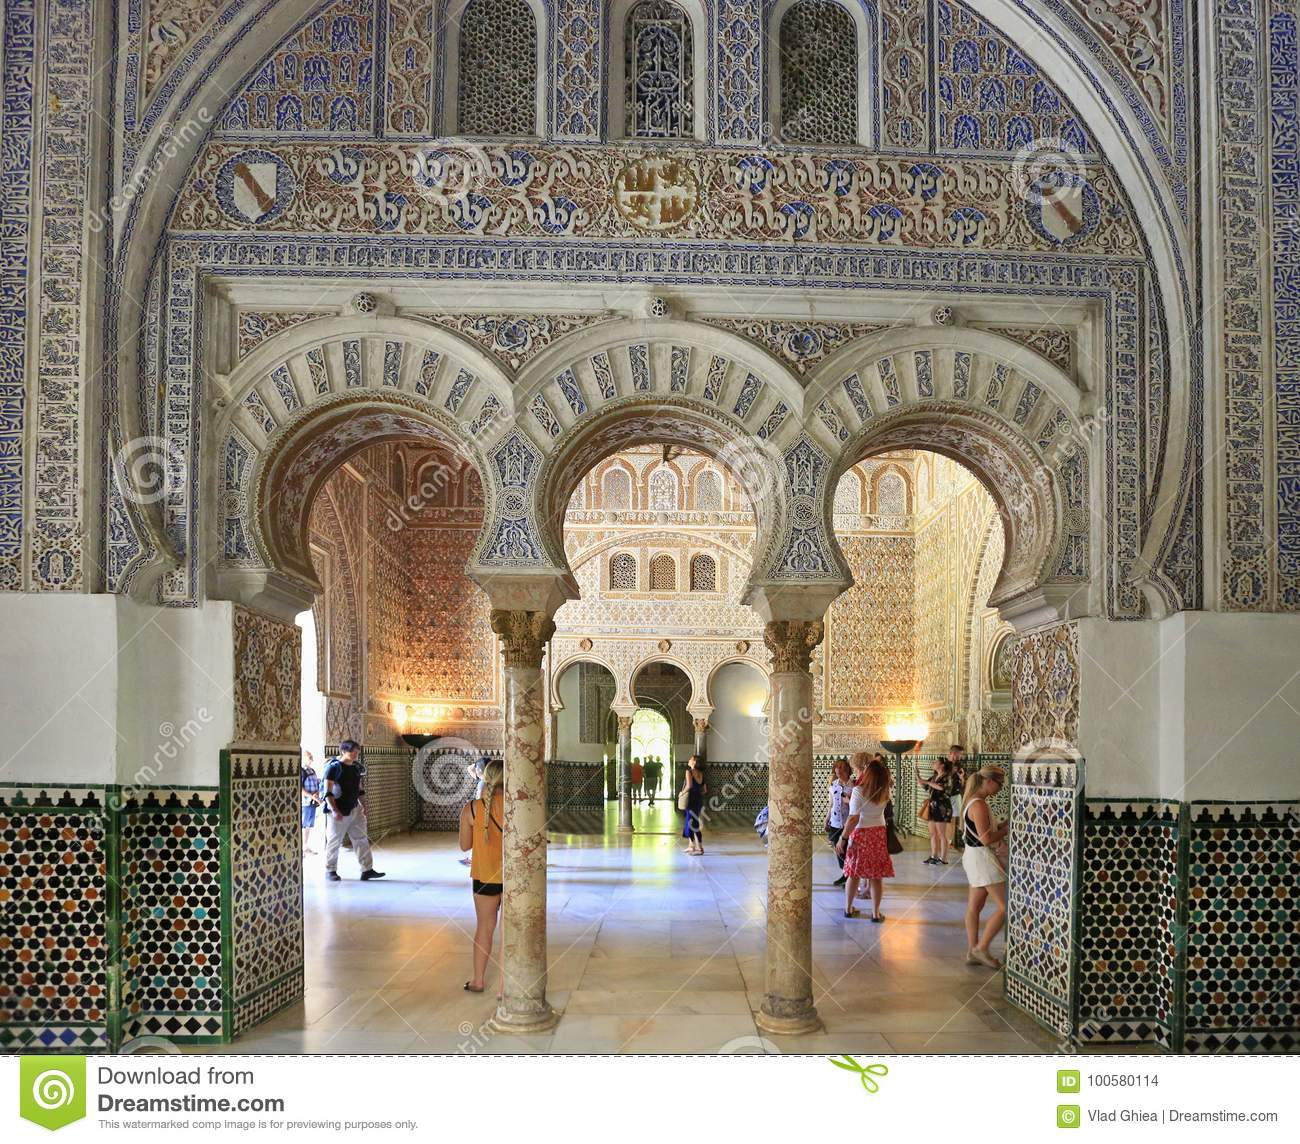 The Alcazar Of Seville Is A Royal Palace Interior, Spain